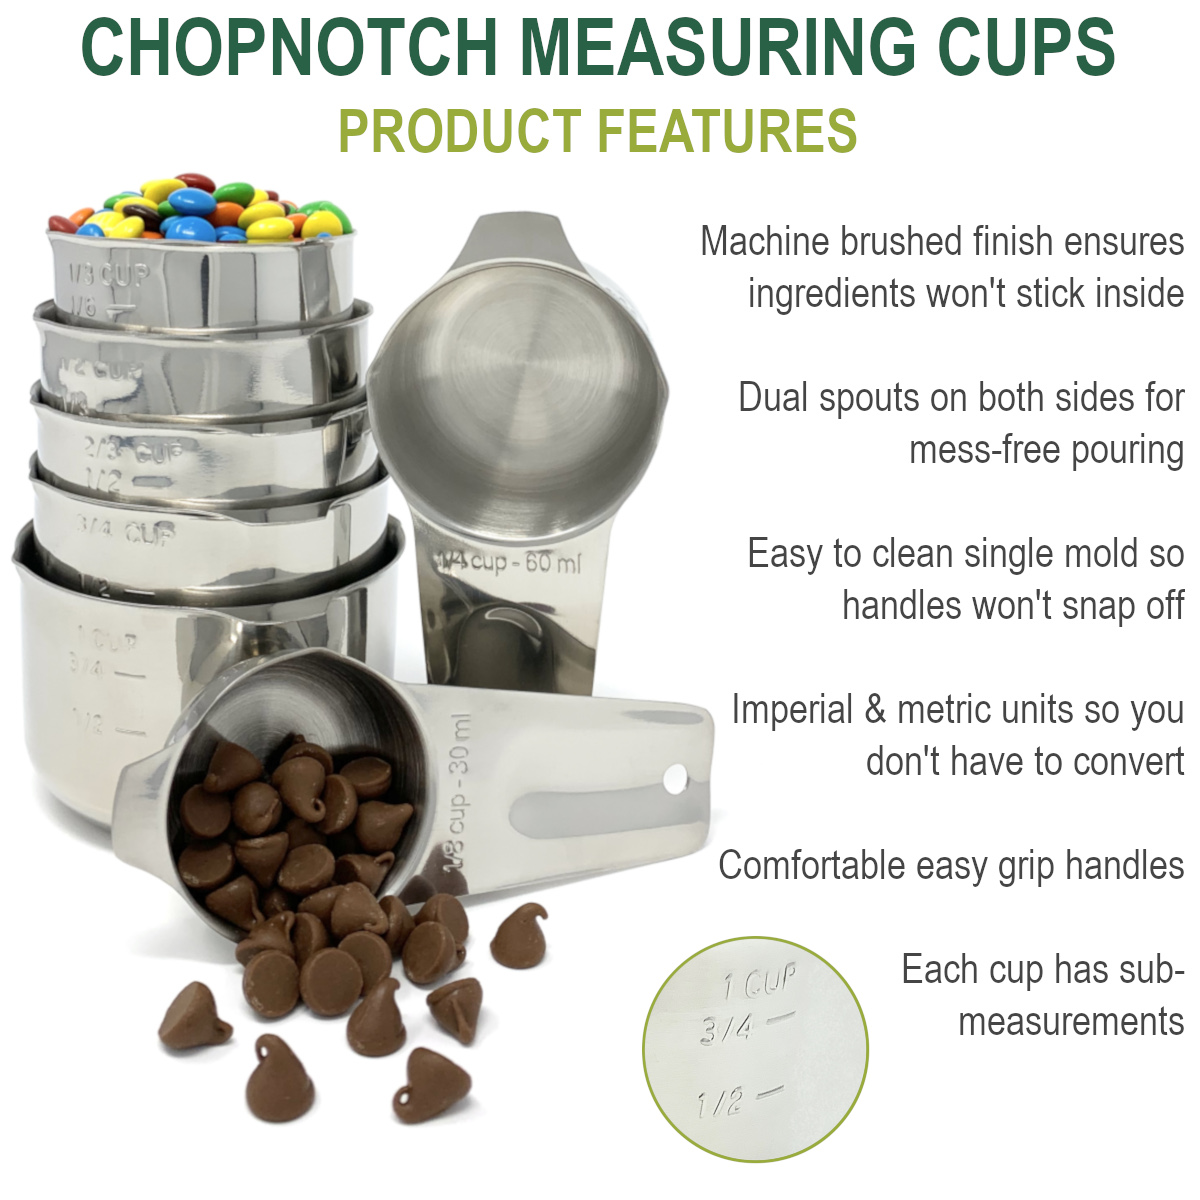 A close up of the measuring cups with a list of features.